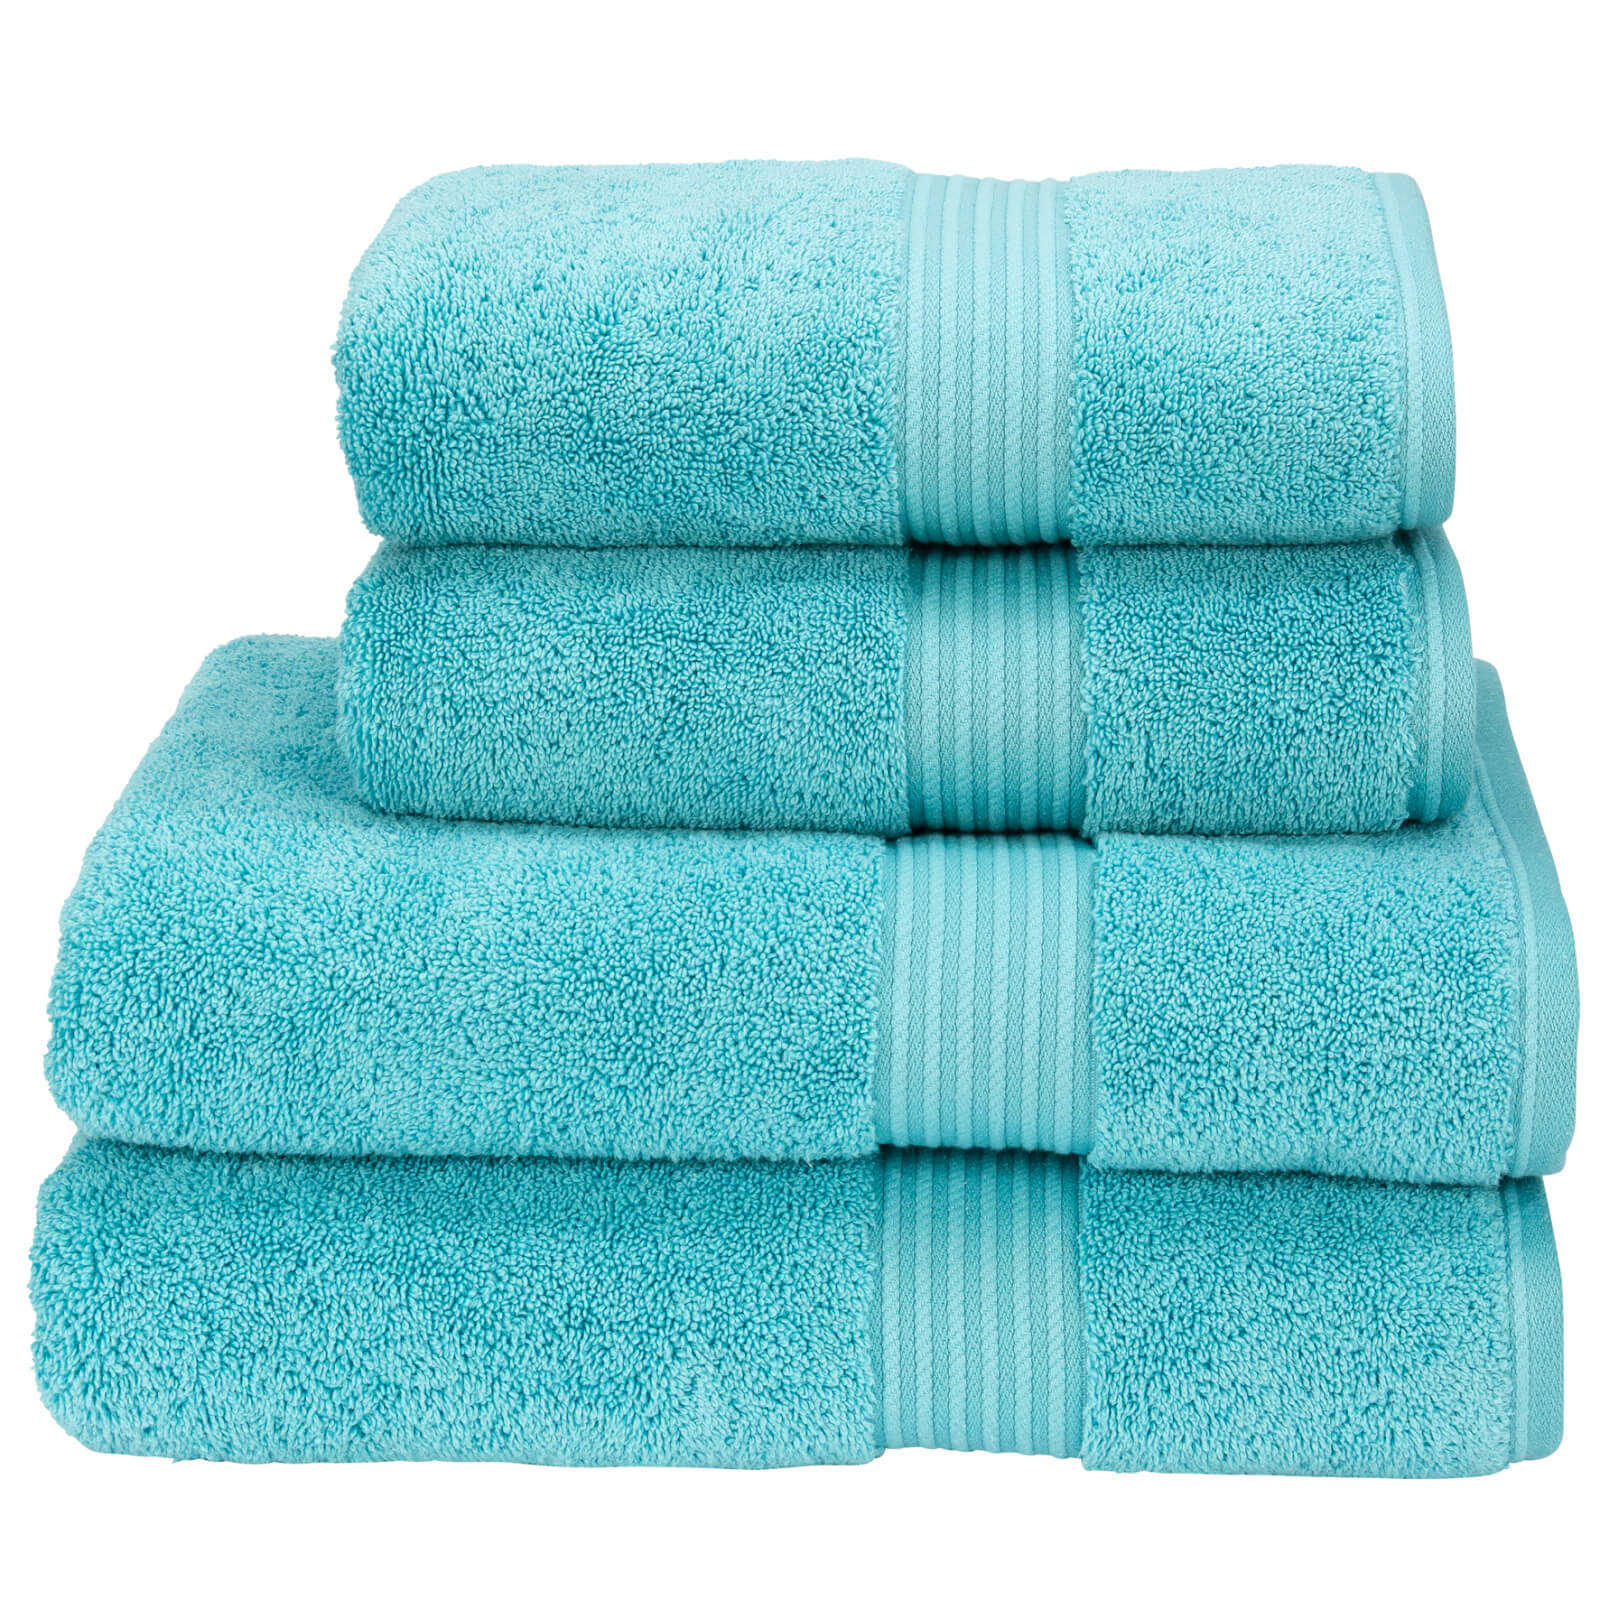 Christy Supreme Hygro Towels - Lagoon